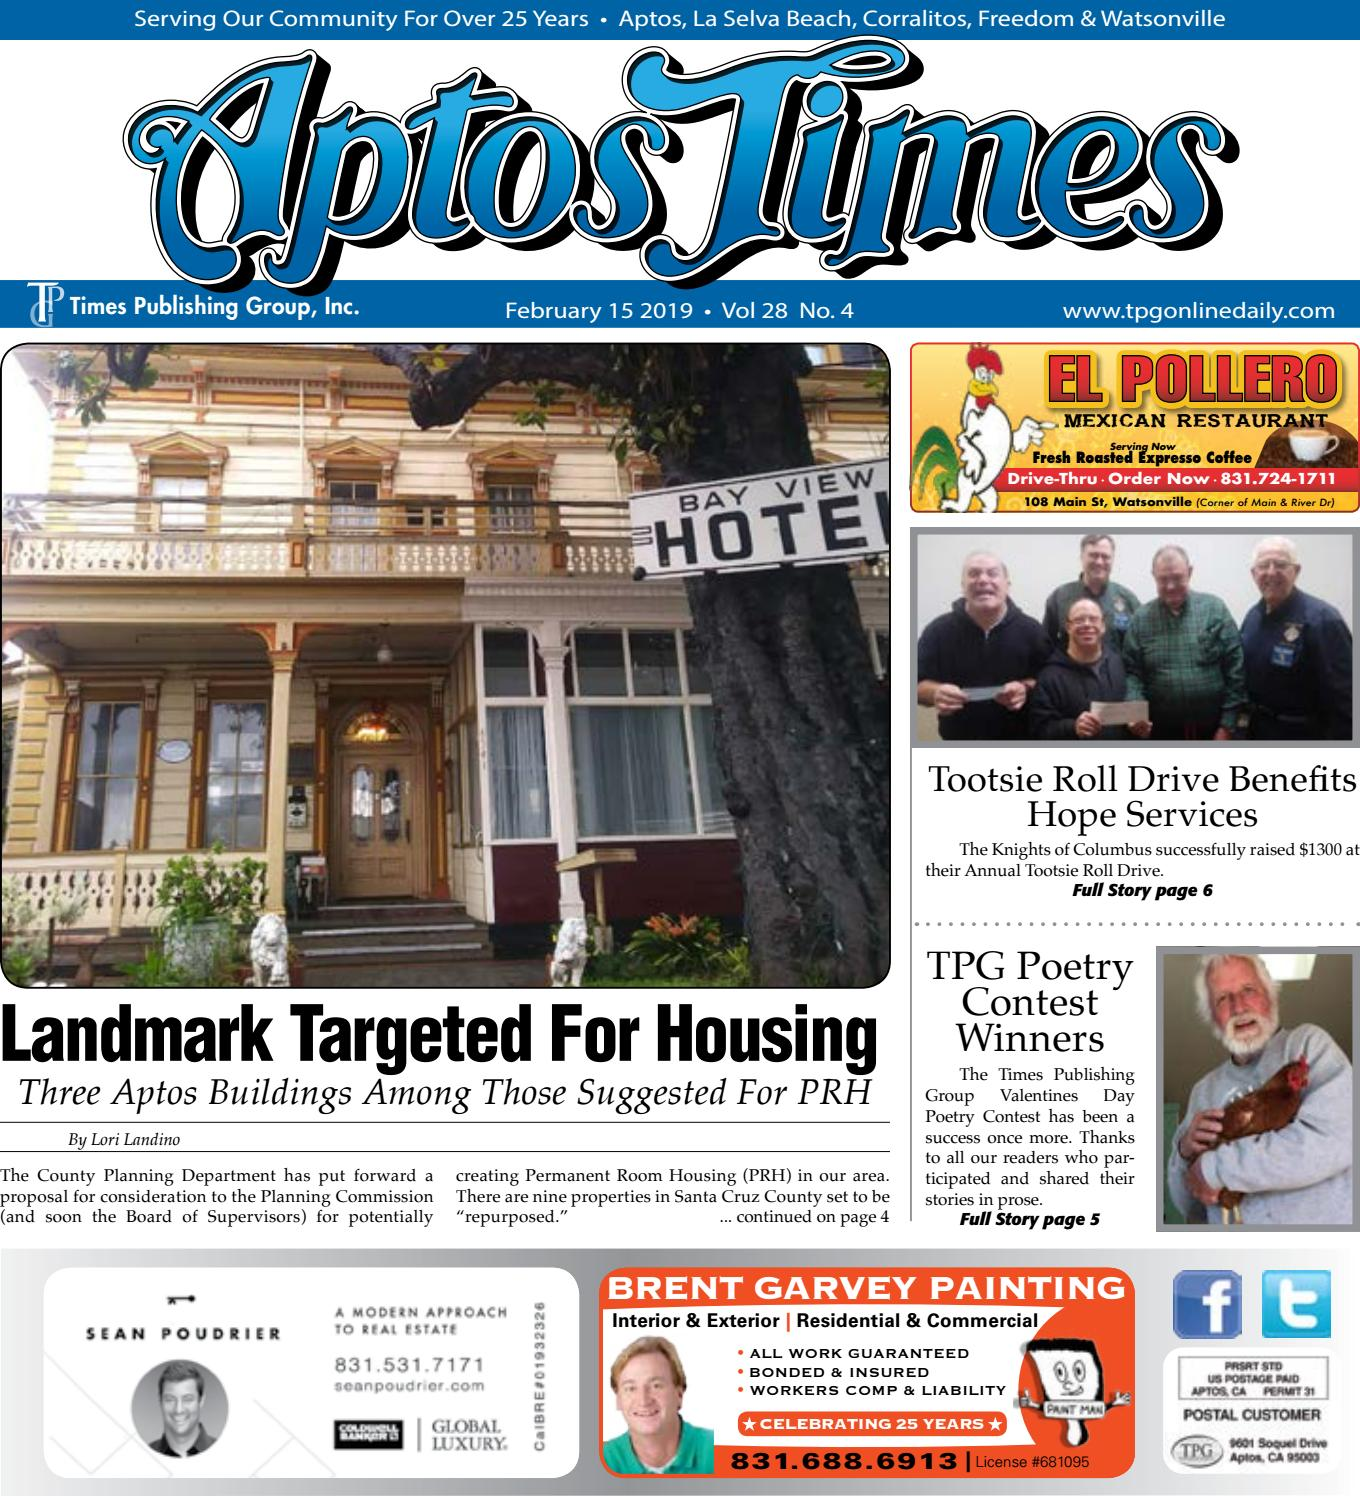 Aptos Times: February 15, 2019 by Times Publishing Group